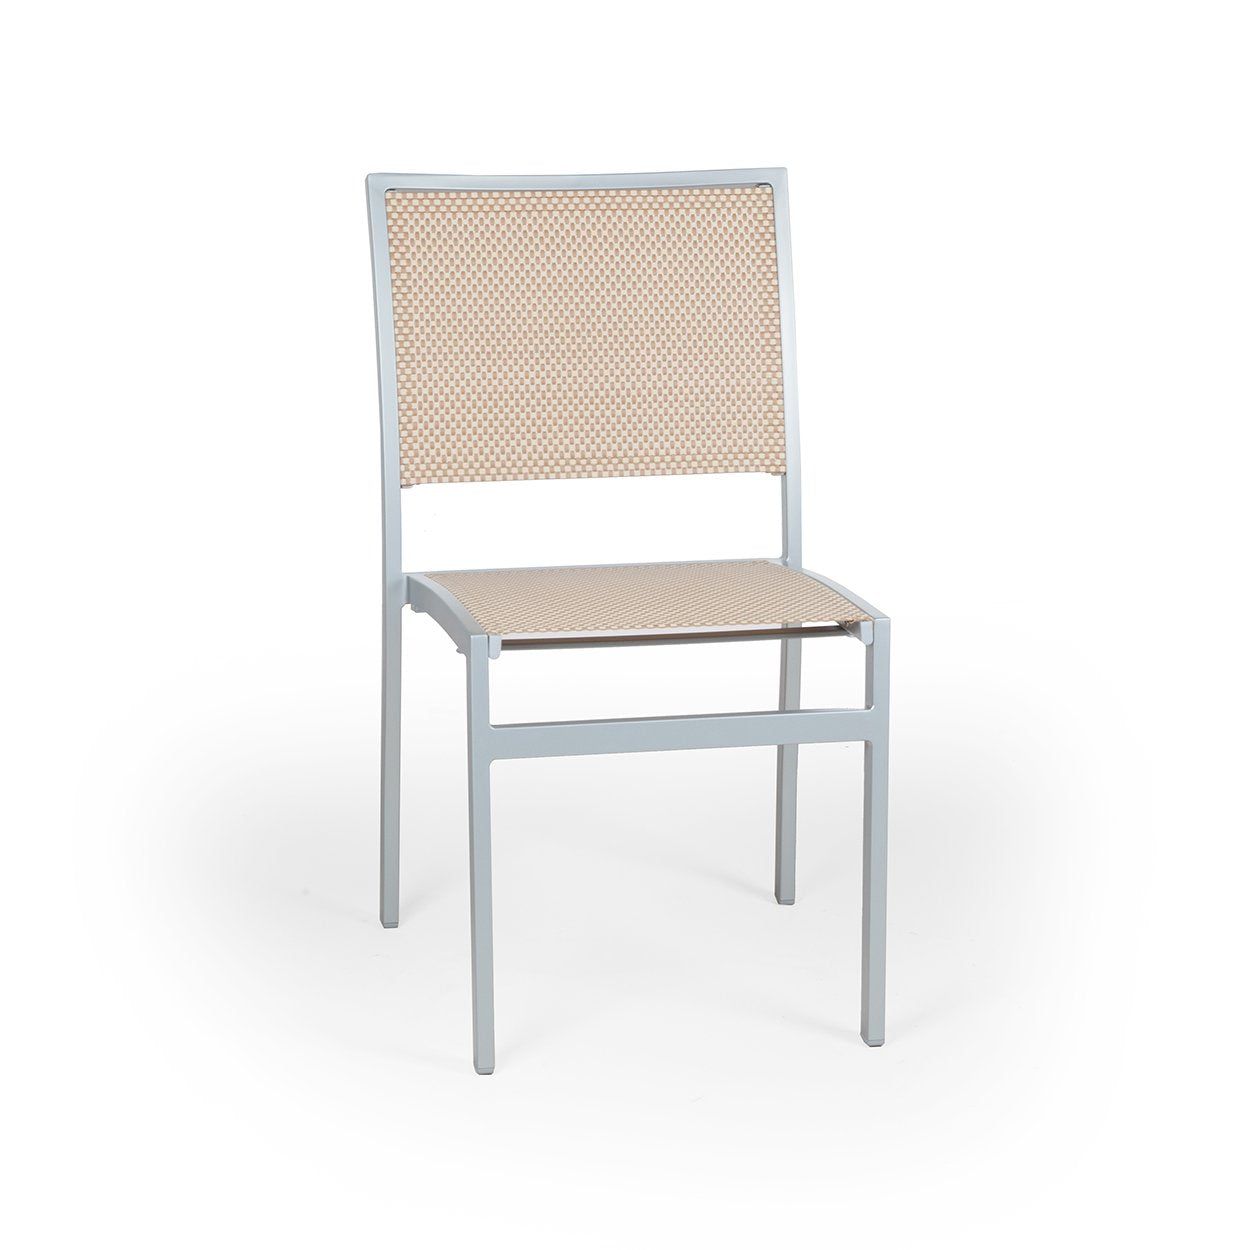 [FCC0201BGE] Flevoland side chair